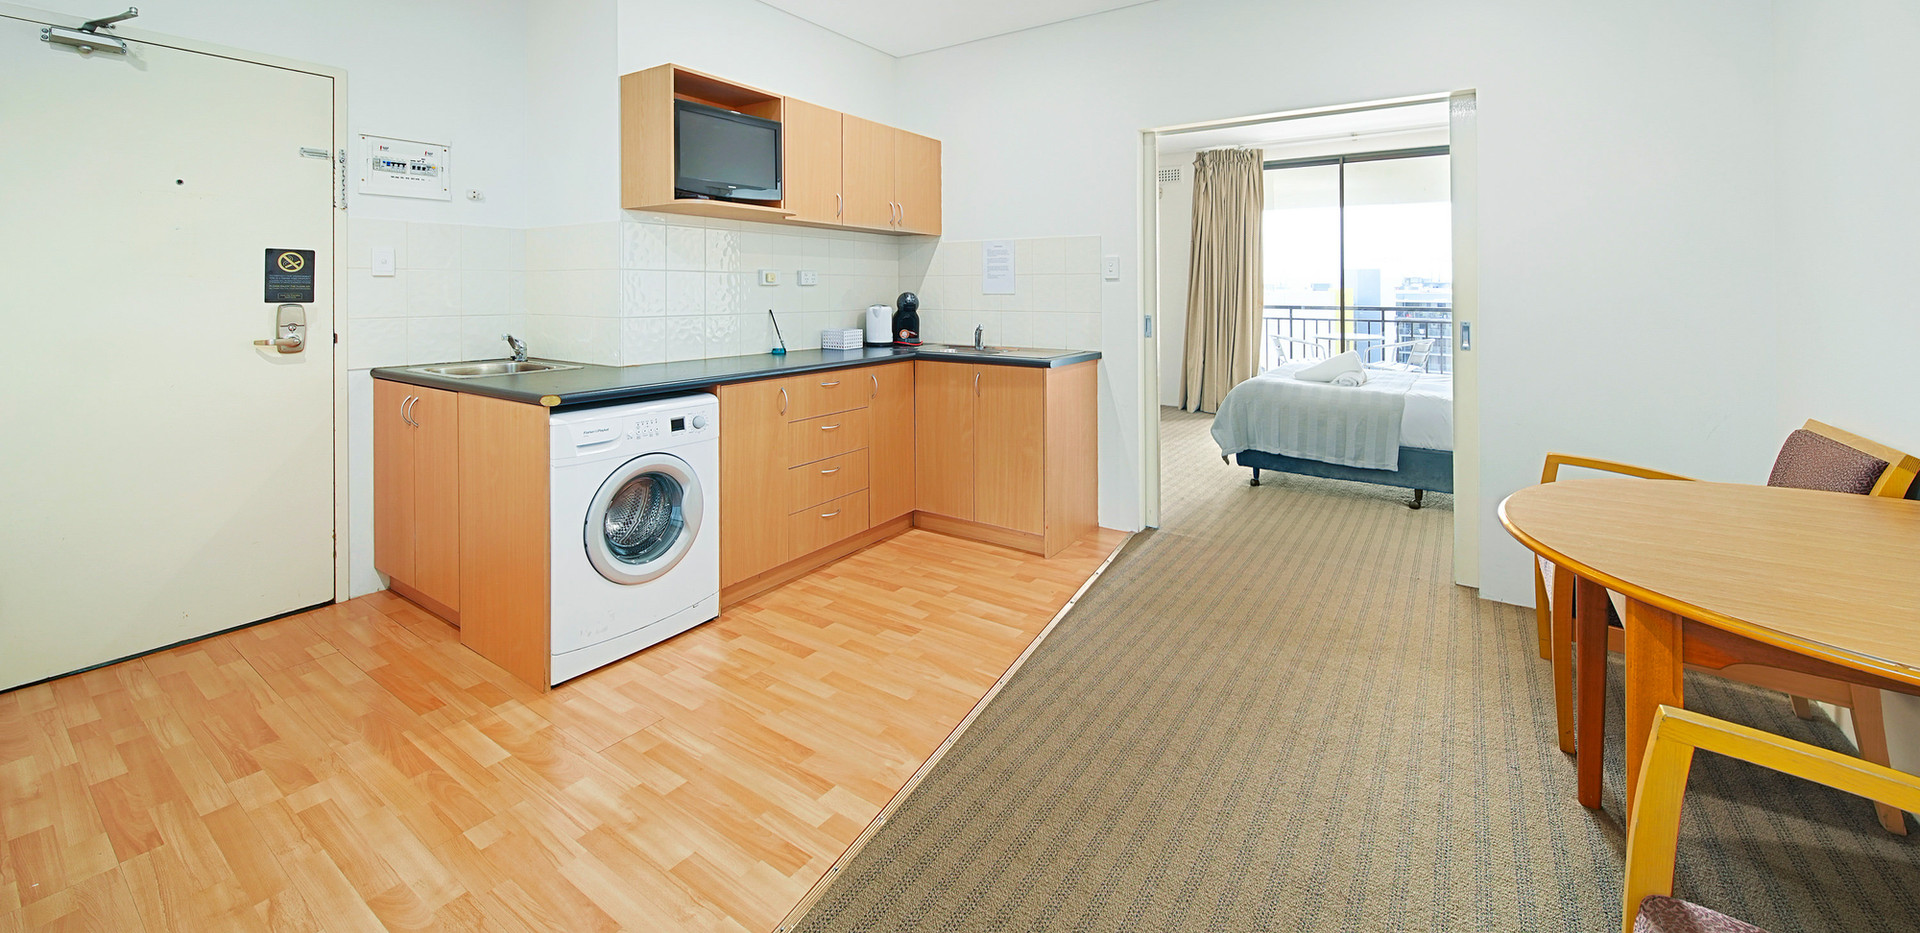 5. Kitchen Lounge - Two Bedroom - All Su